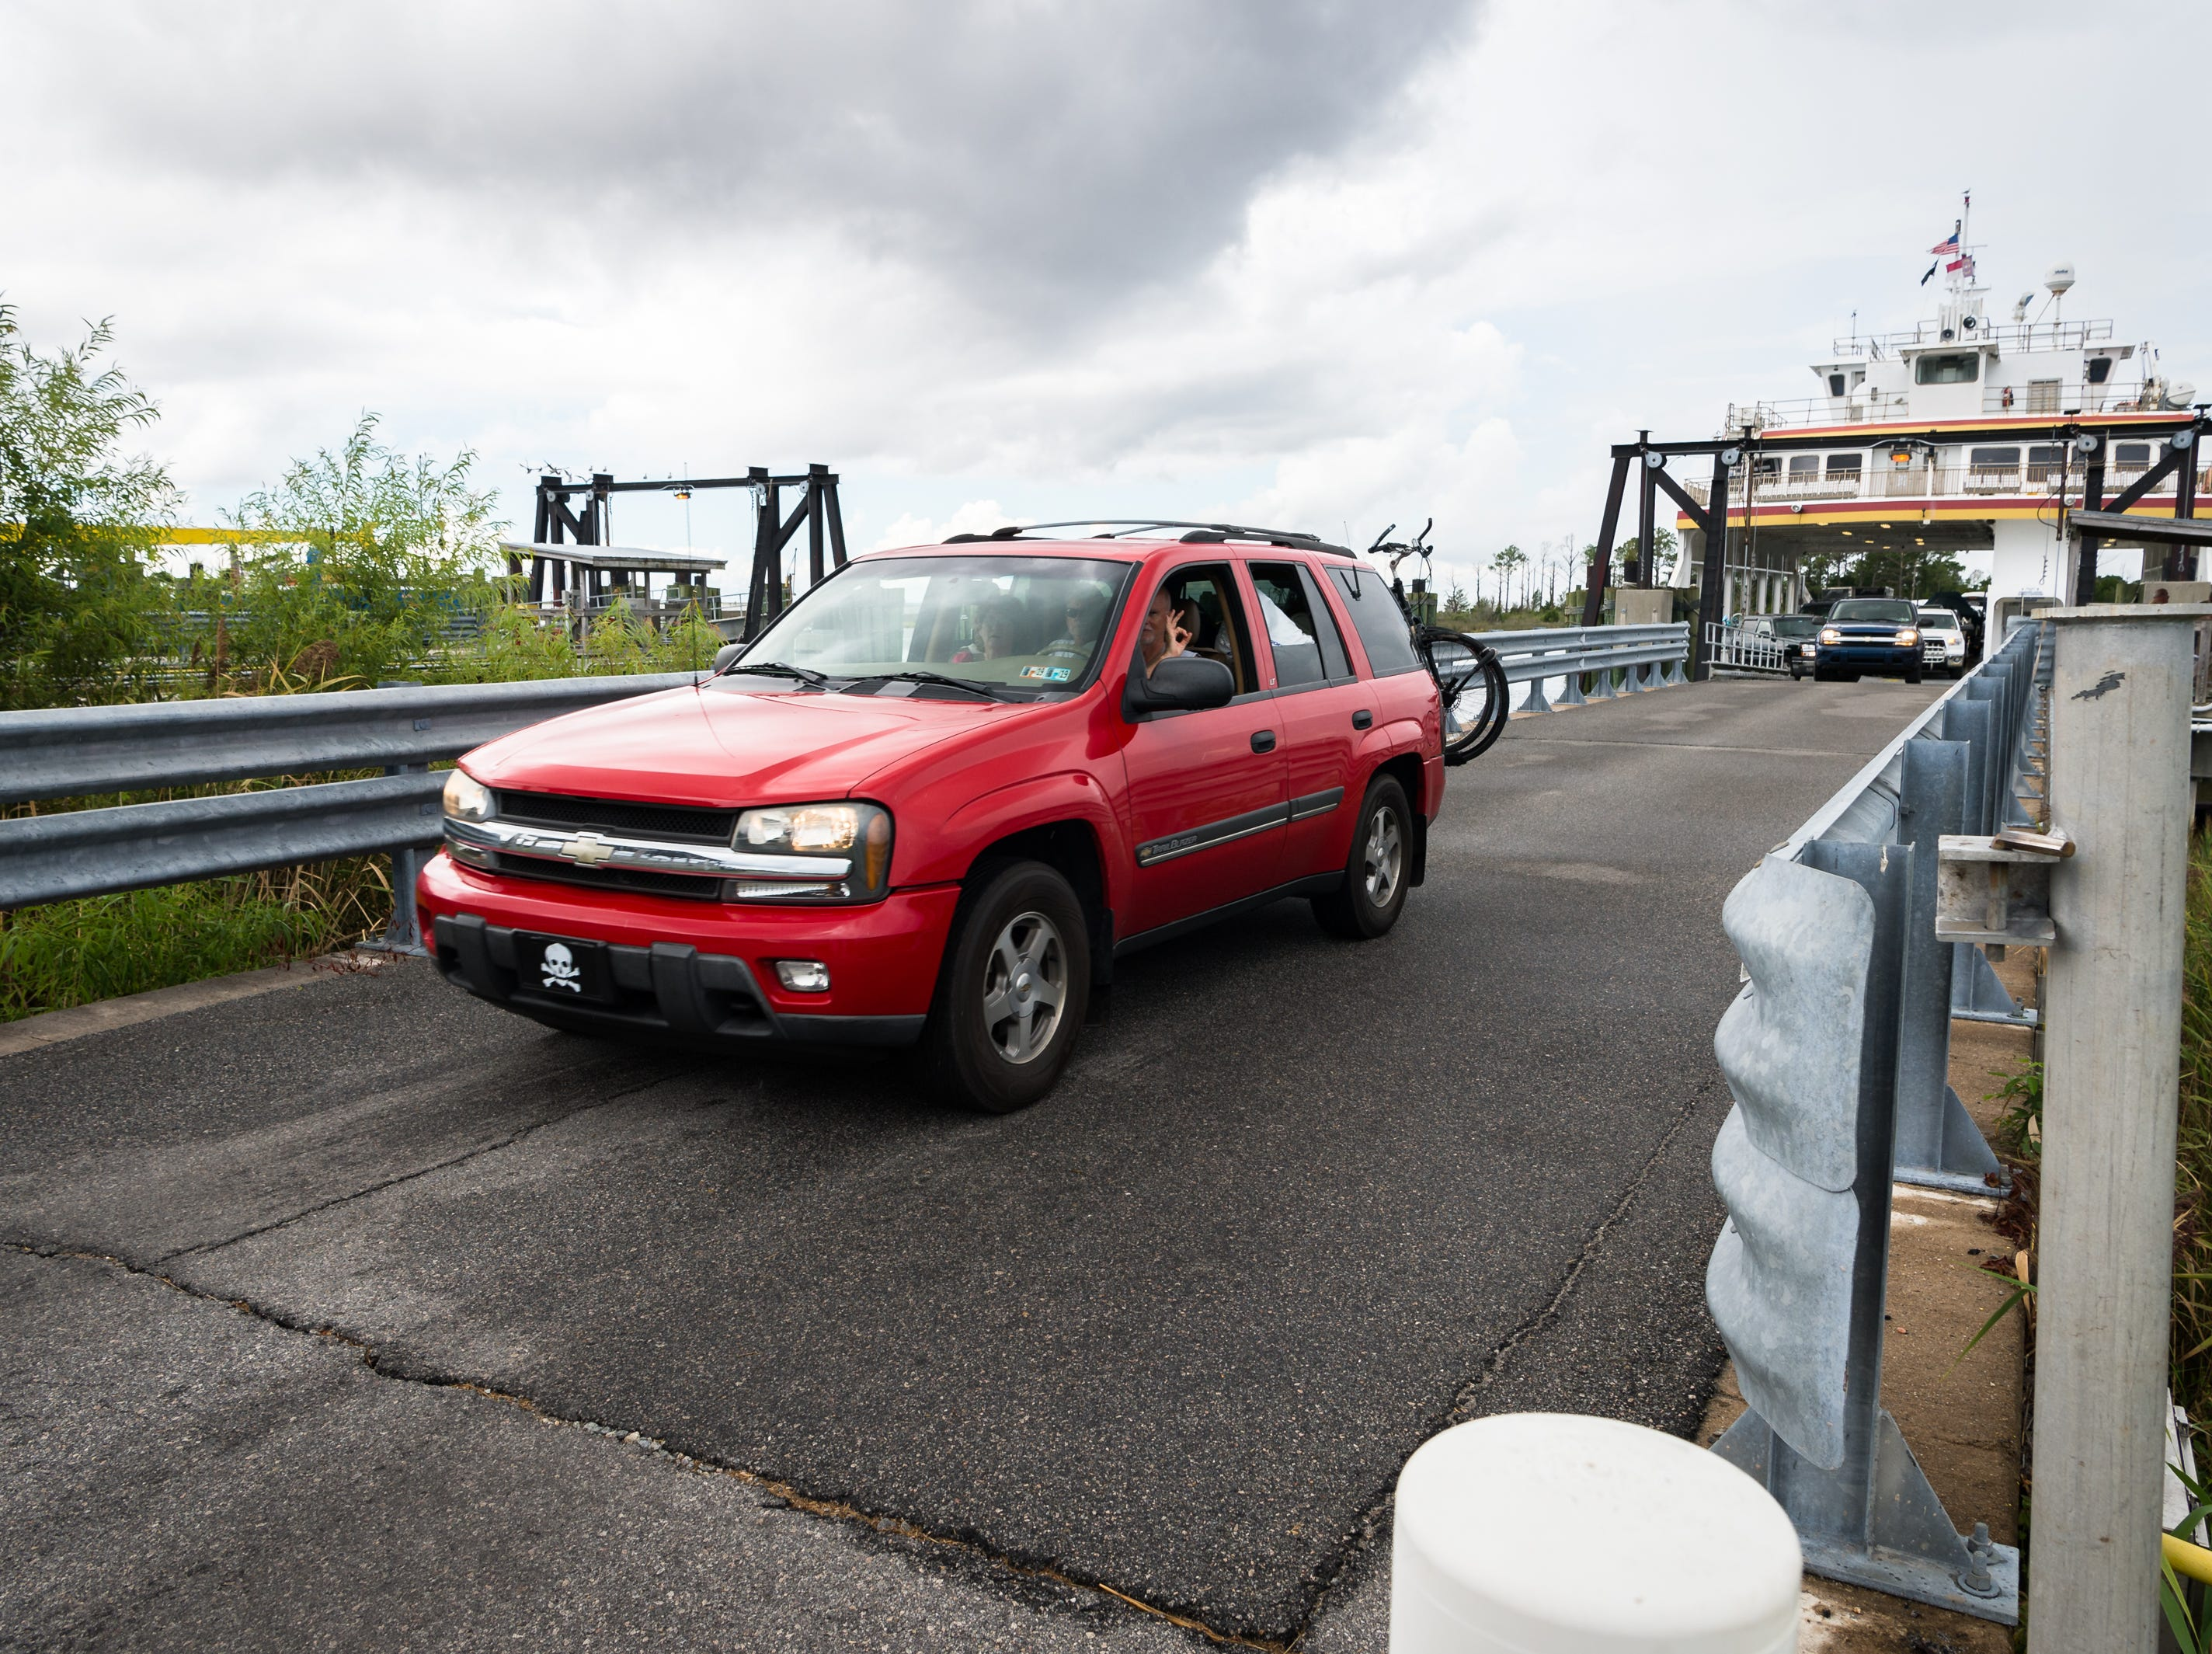 Passengers drive their cars off the Swan Quarter ferry after arriving at the terminal carrying a full load of passengers from Ocracoke Island Sept. 11, 2018, in accordance with the mandatory evacuation order in preparation for hurricane Florence.